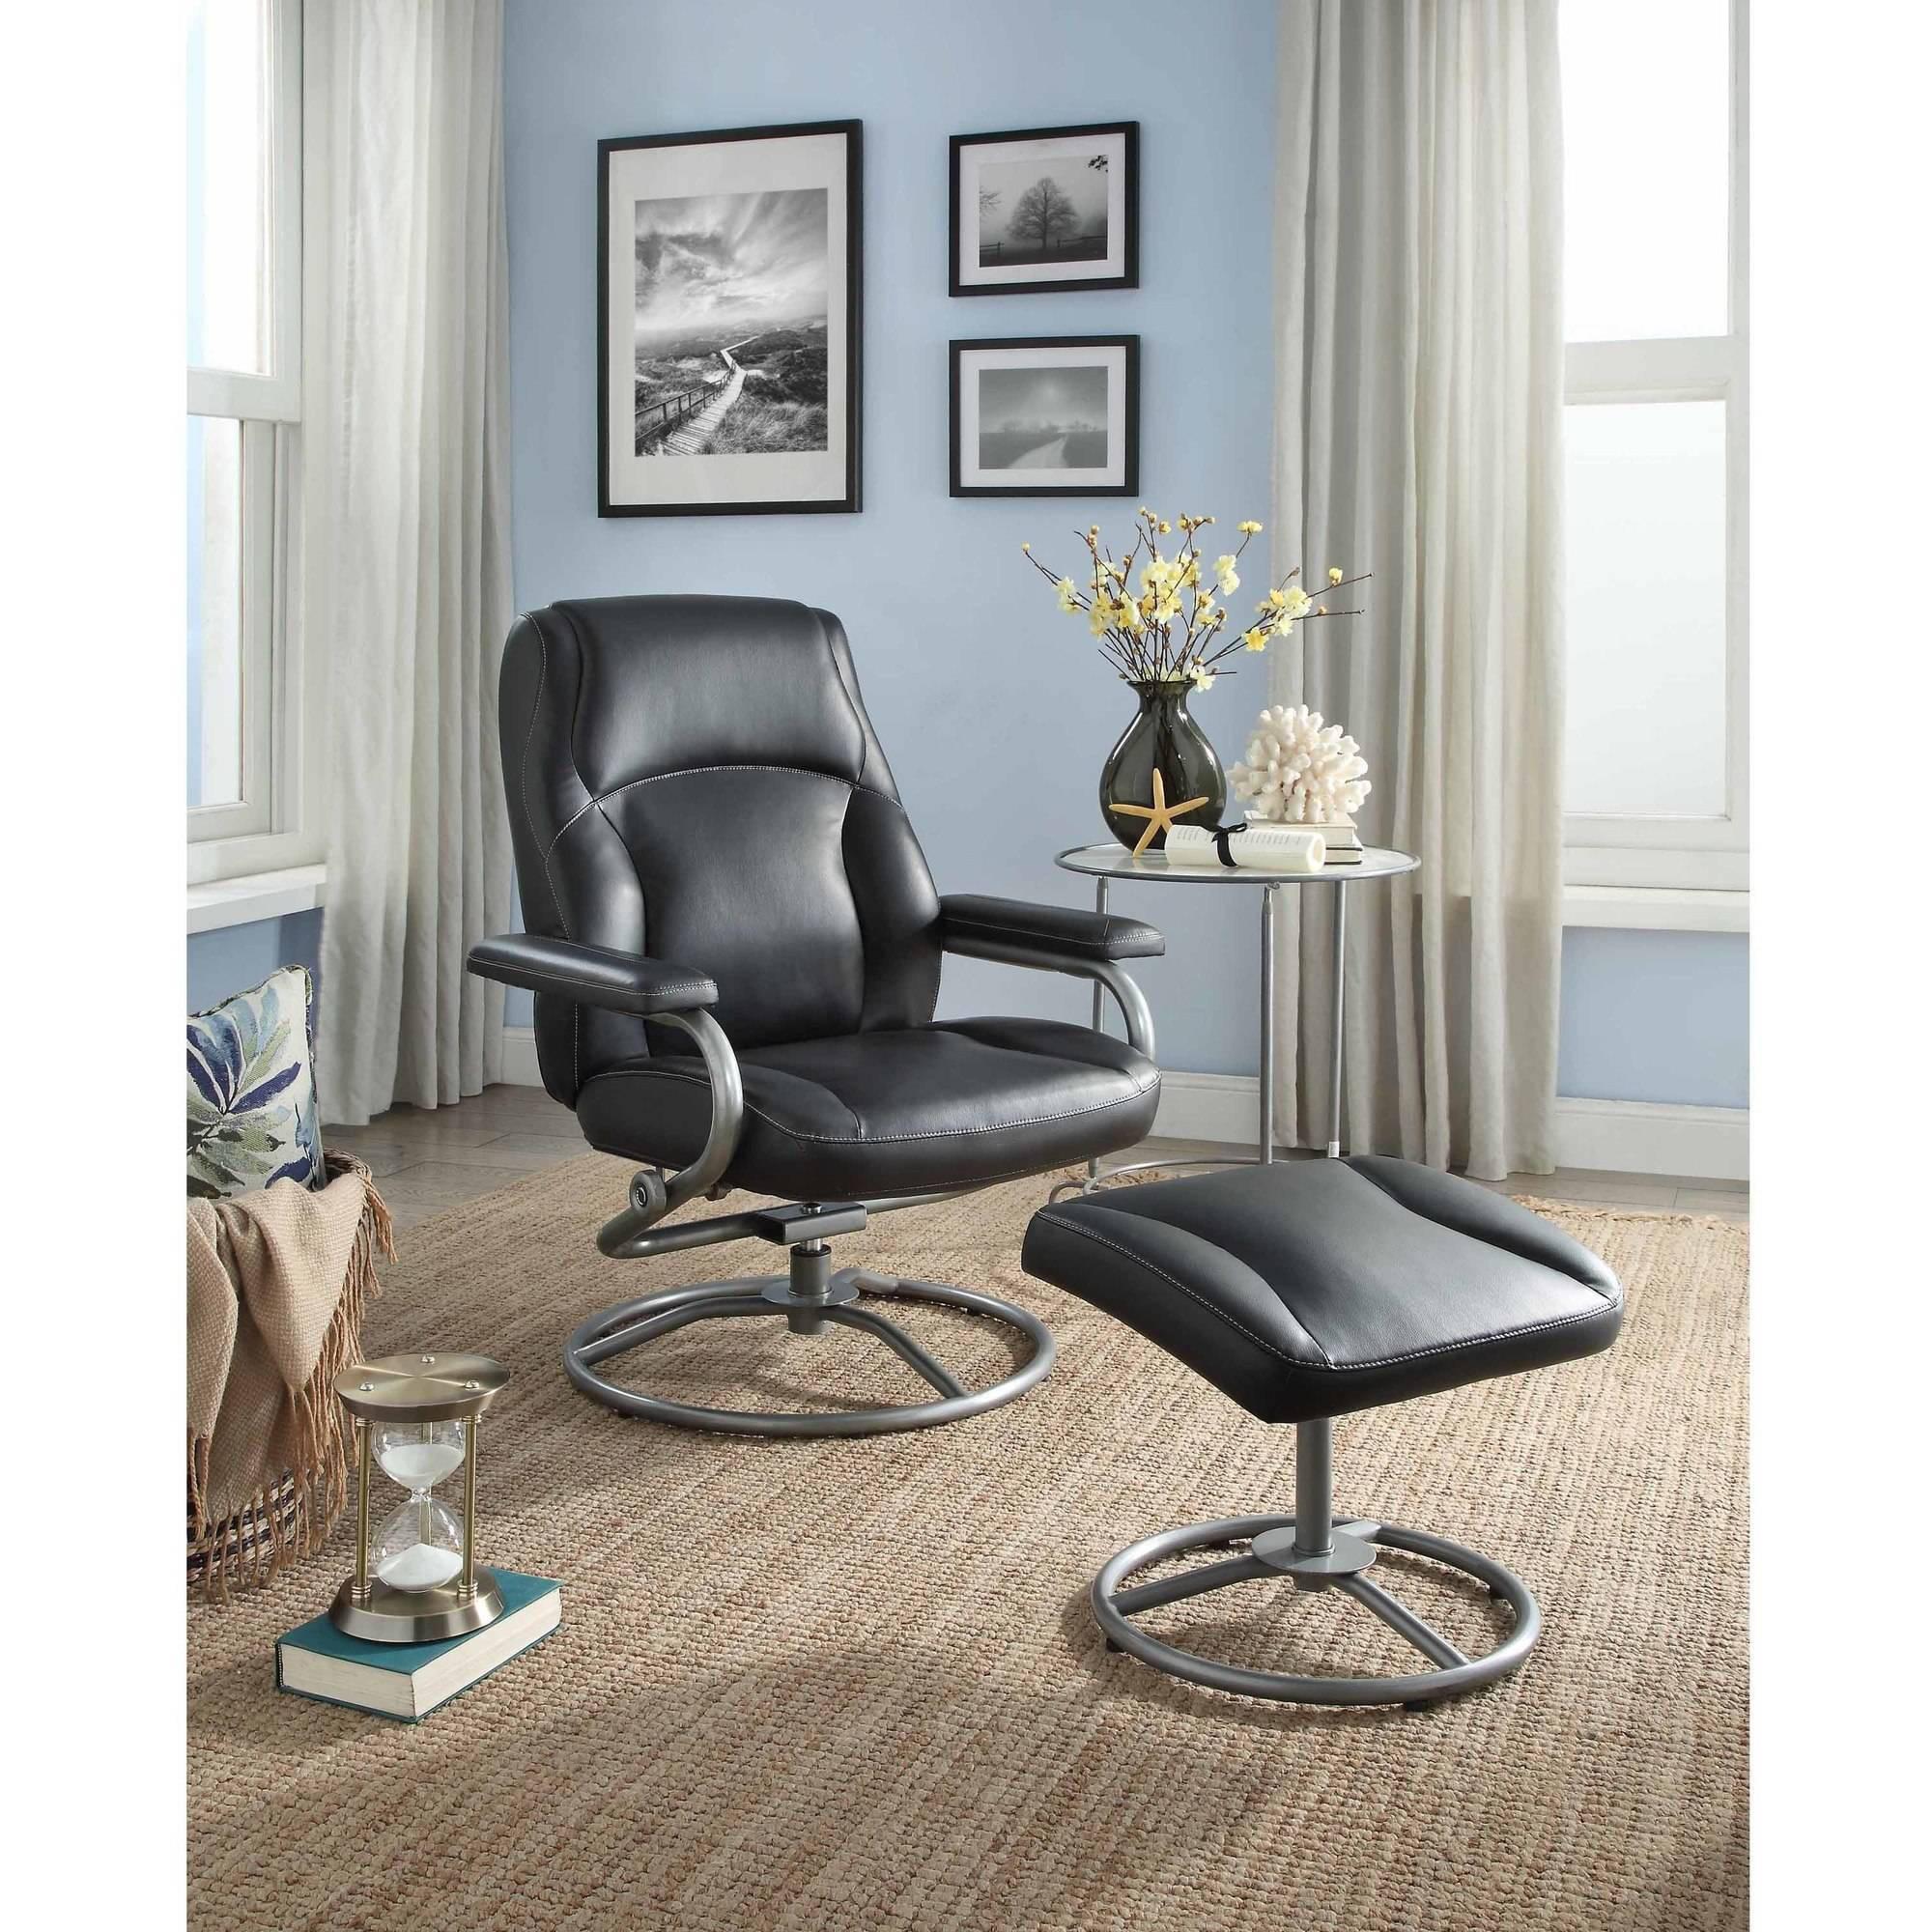 Mainstays Plush Pillowed Recliner Swivel Chair And Ottoman Set, Vinyl,  Multiple Colors